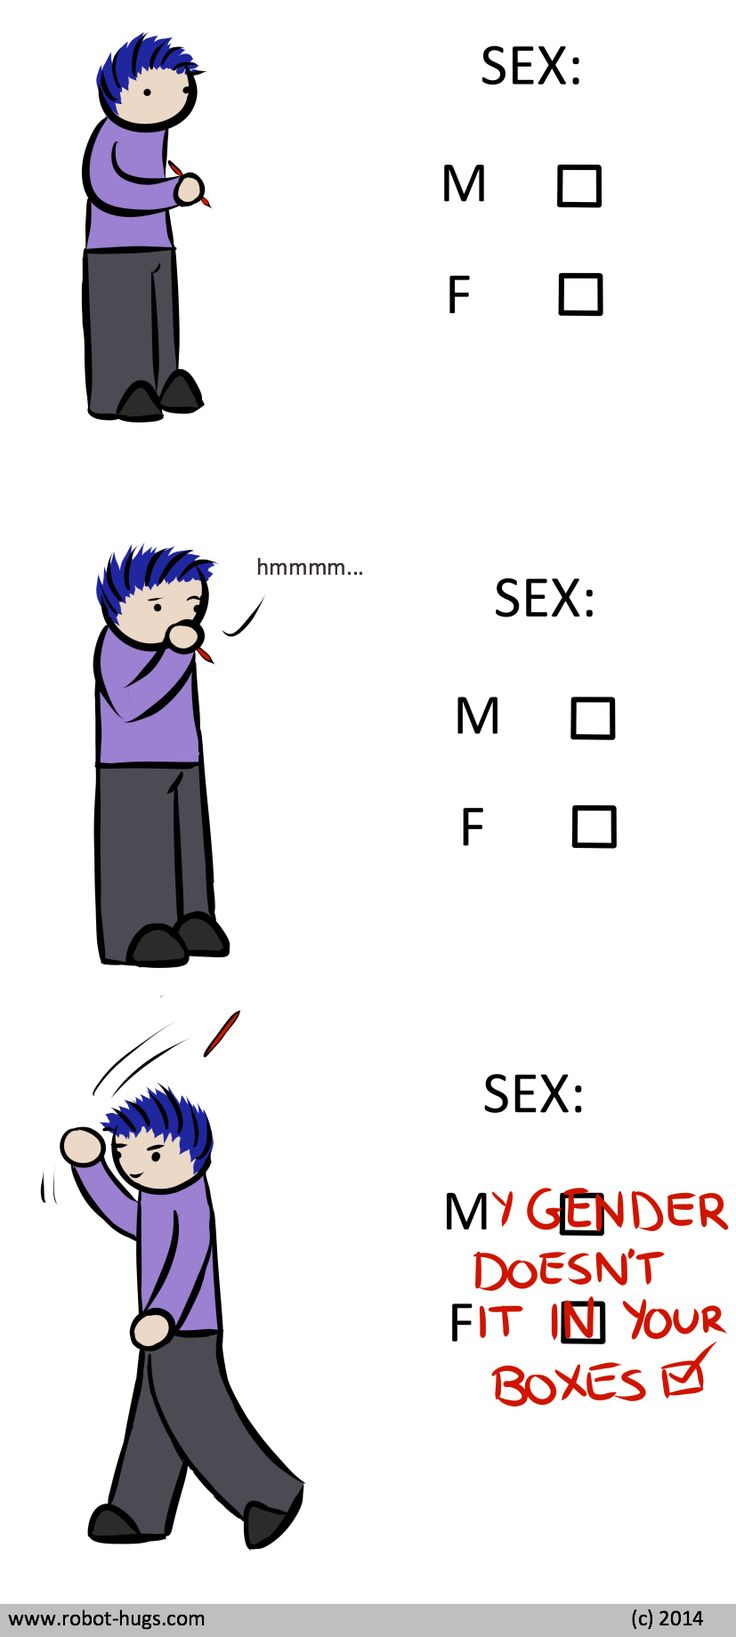 Many people feel this way when coming across gender identity questions therefore a new method of asking this question should be created.